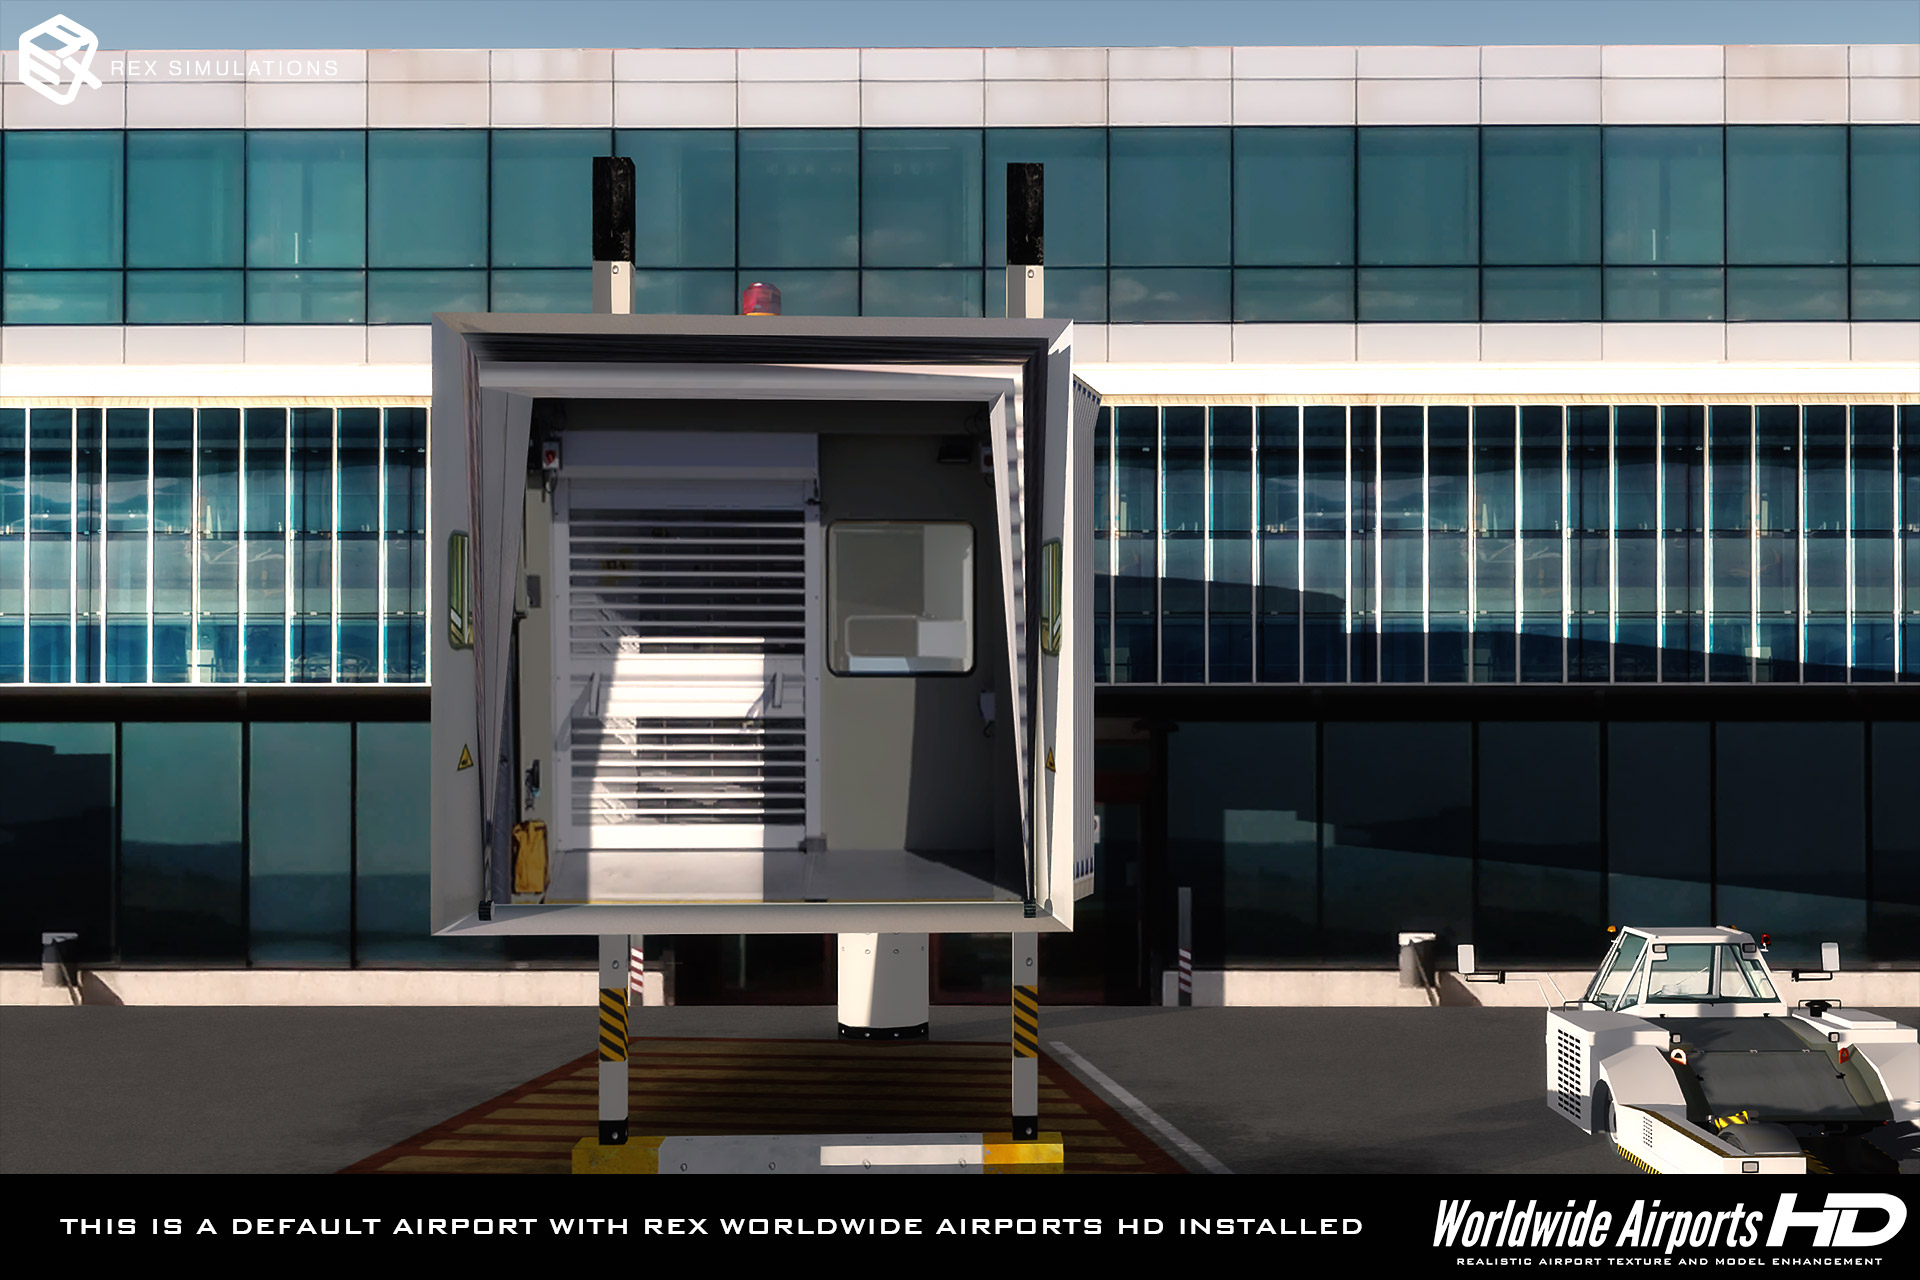 REX - REX WORLDWIDE AIRPORTS HD FSX P3D